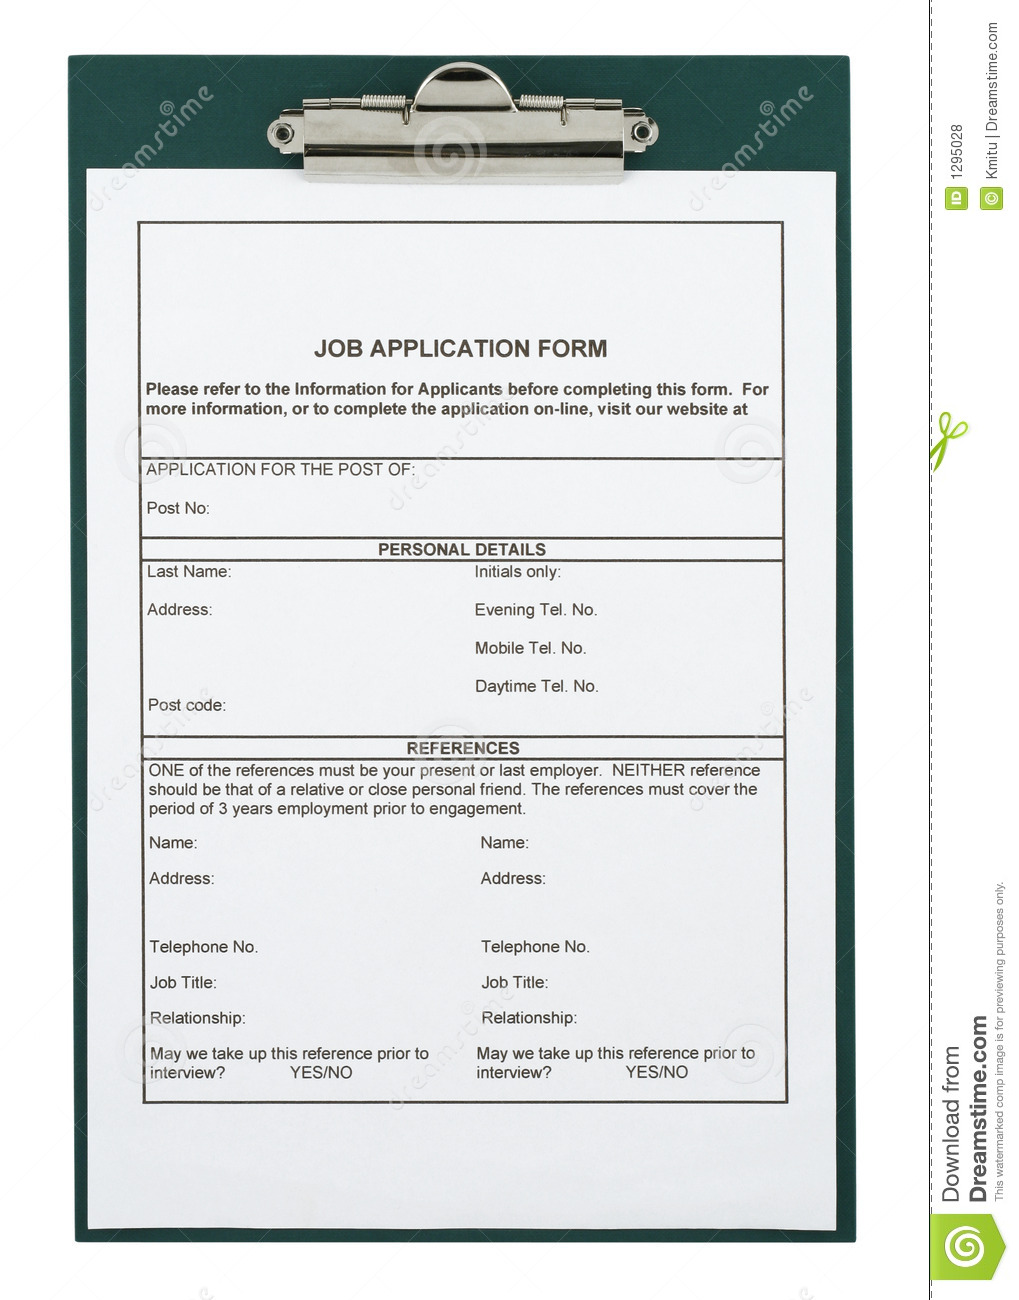 job application form royalty stock photos image 1295028 job application form